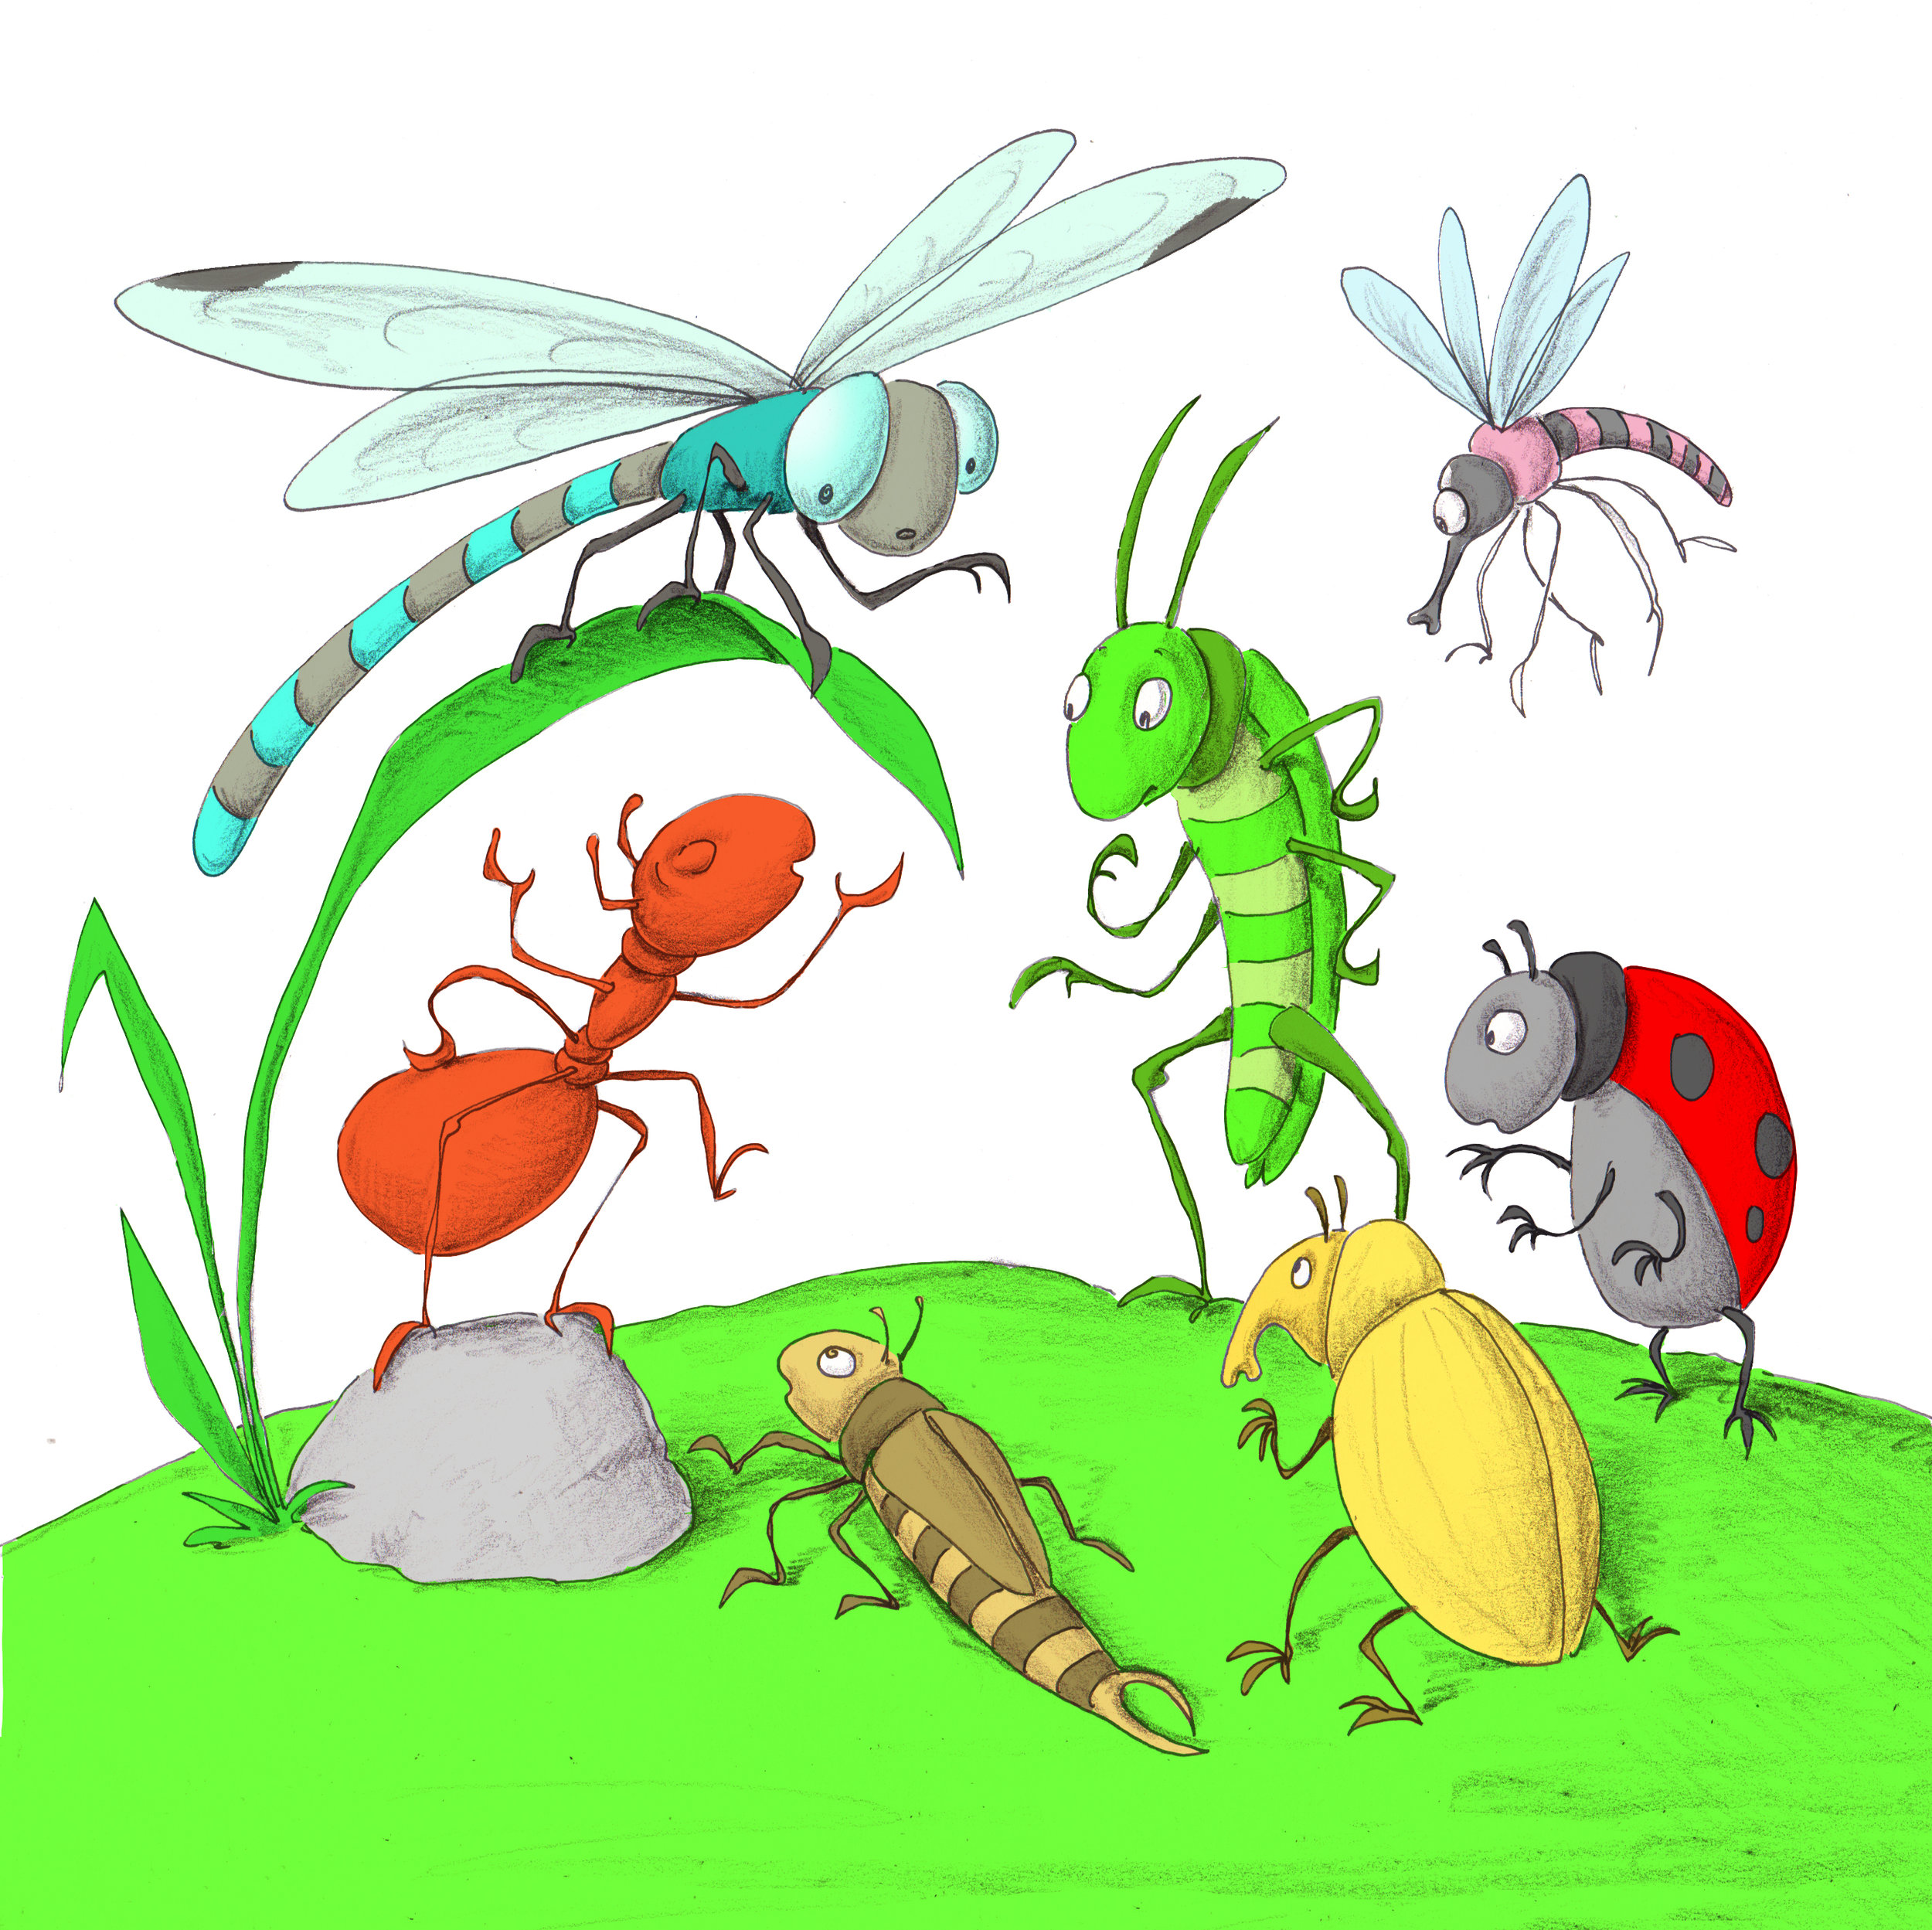 Download image from Little Ant and the Dragonfly.